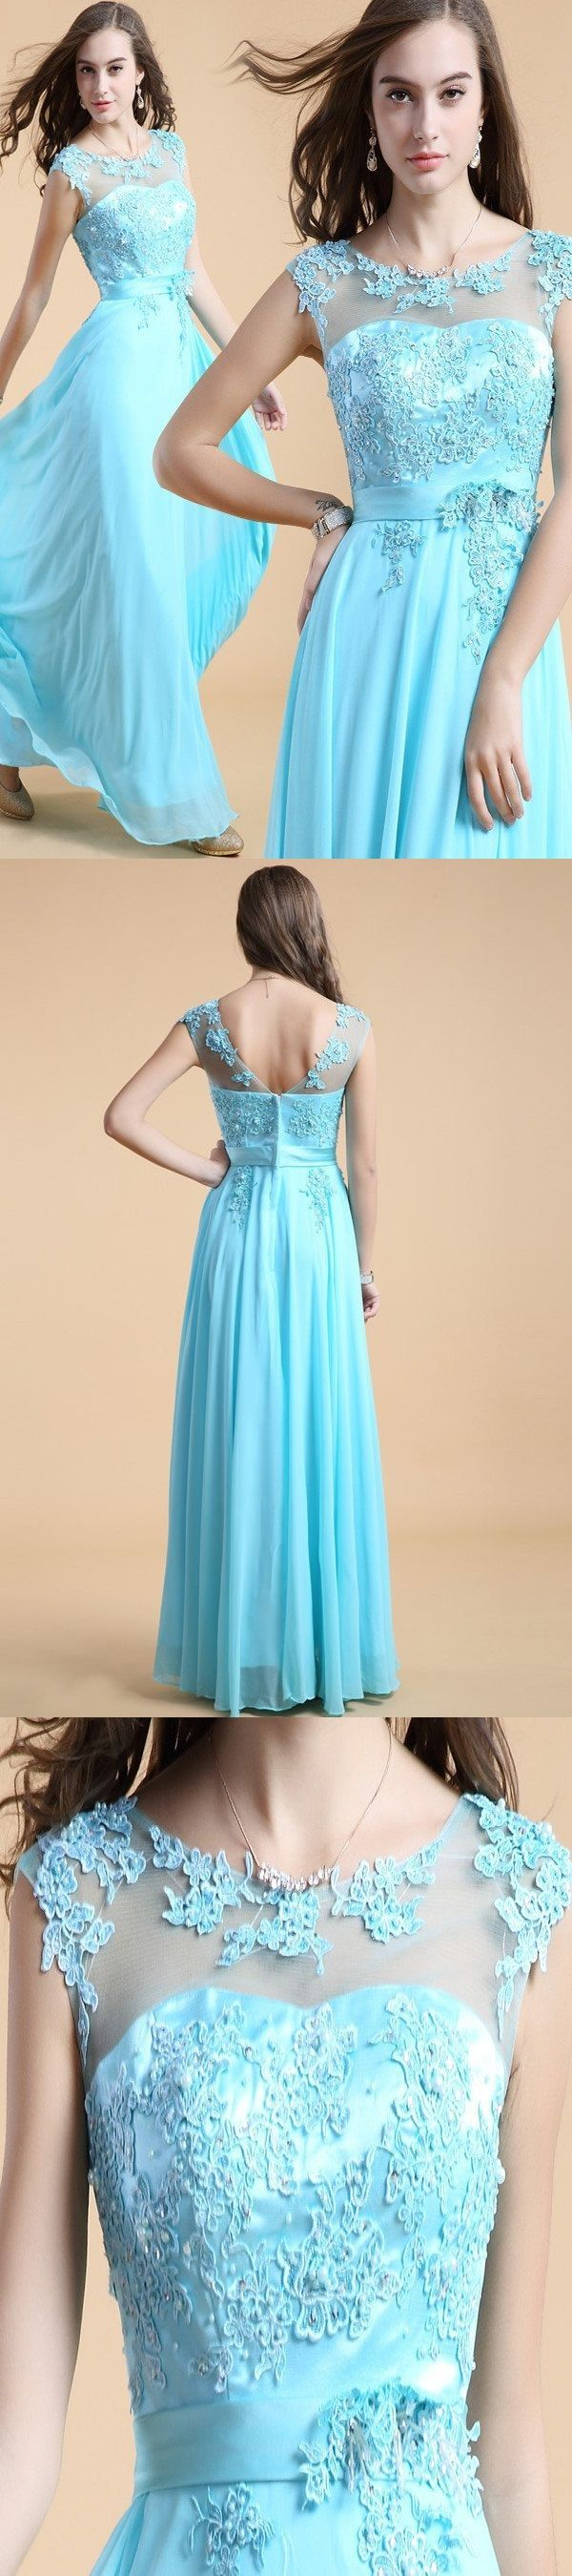 Prom dresses collection - Natalie m prom dresses for big